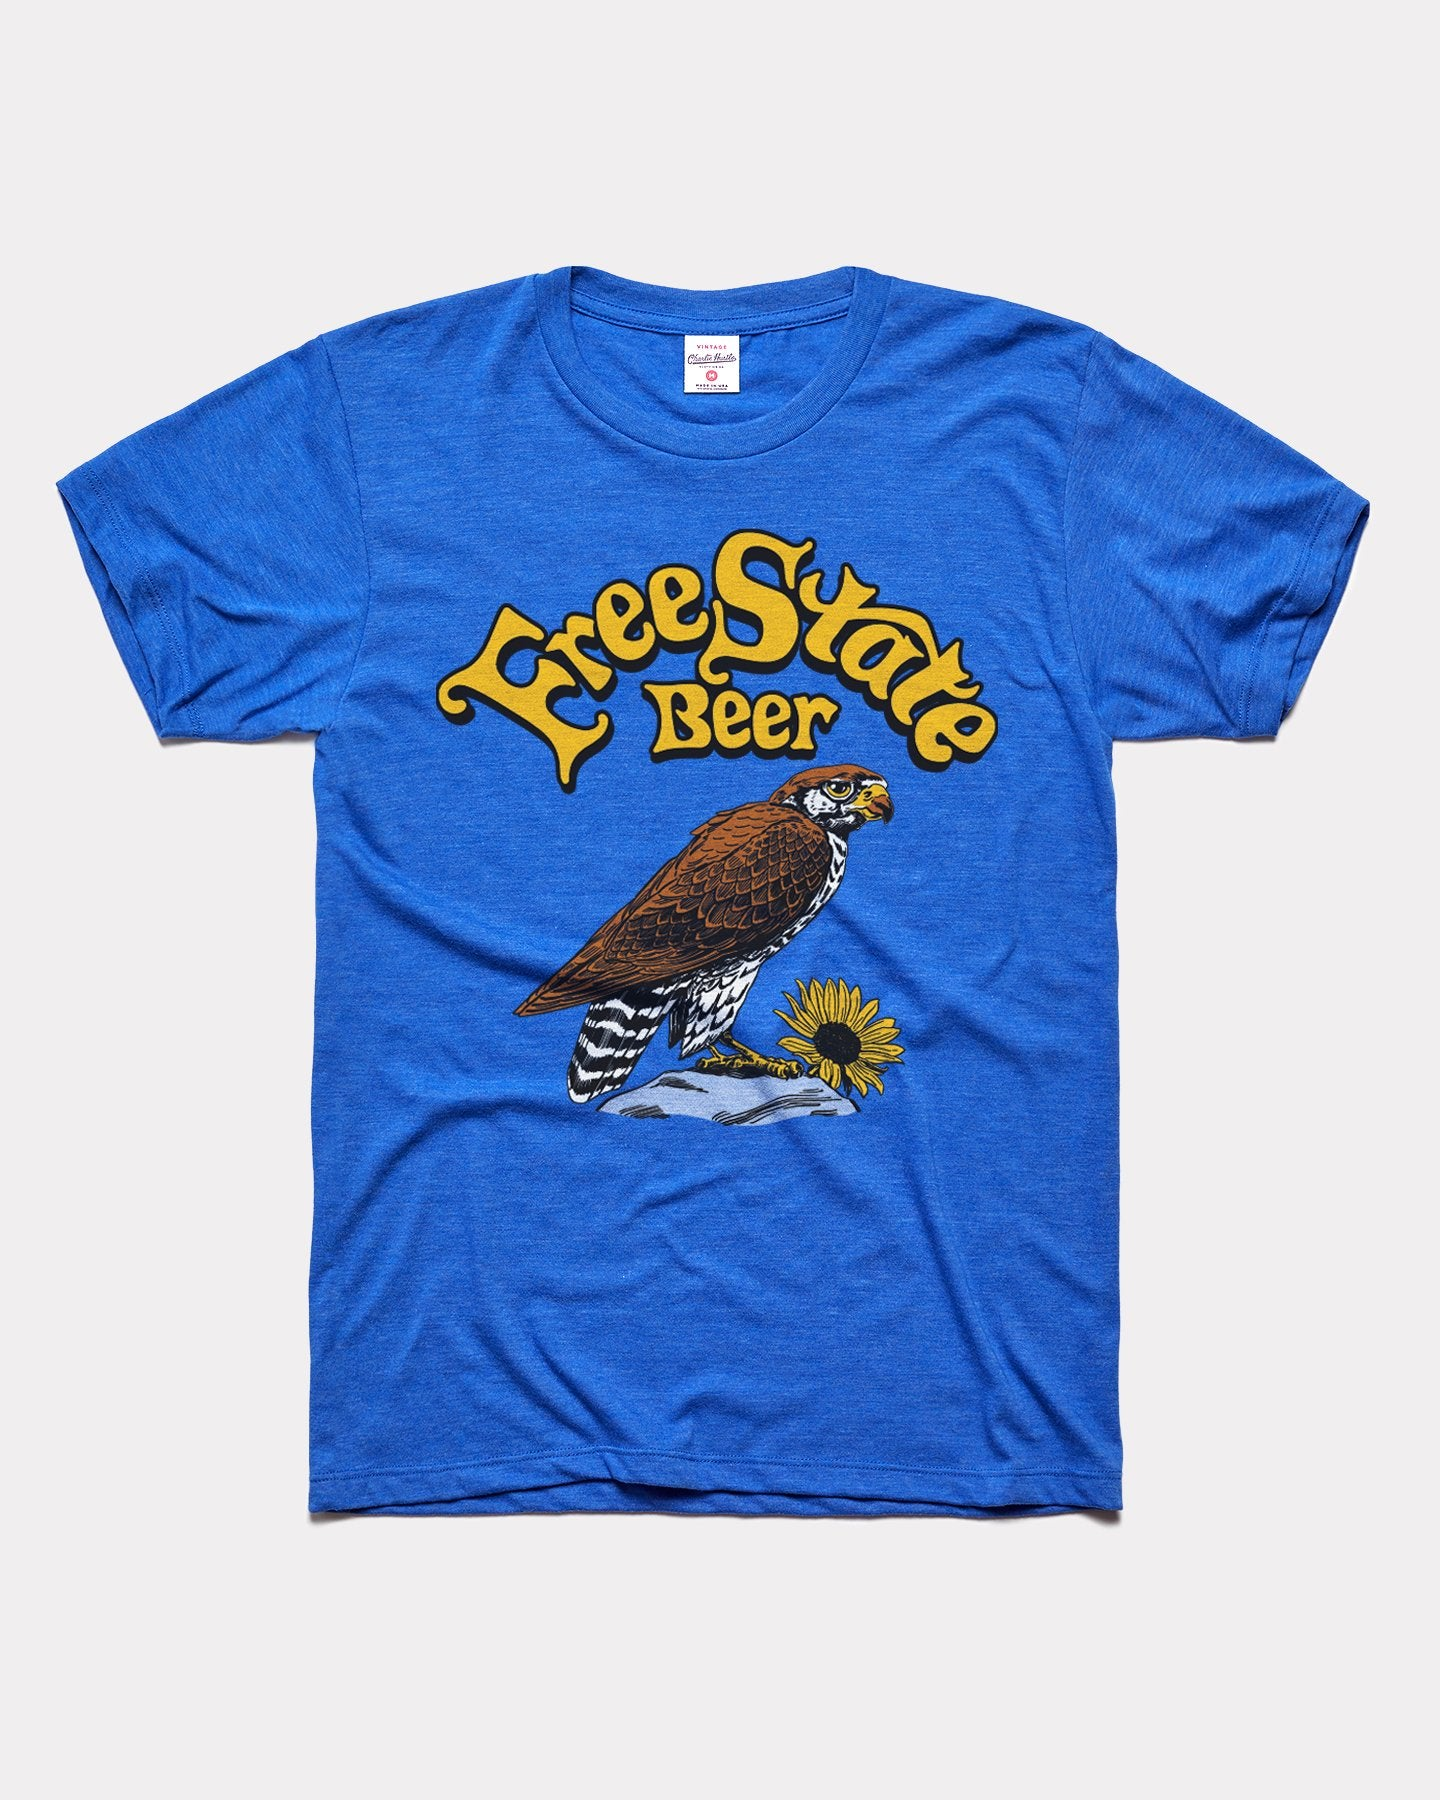 Royal Blue Free State Brewery Beer Vintage T-Shirt